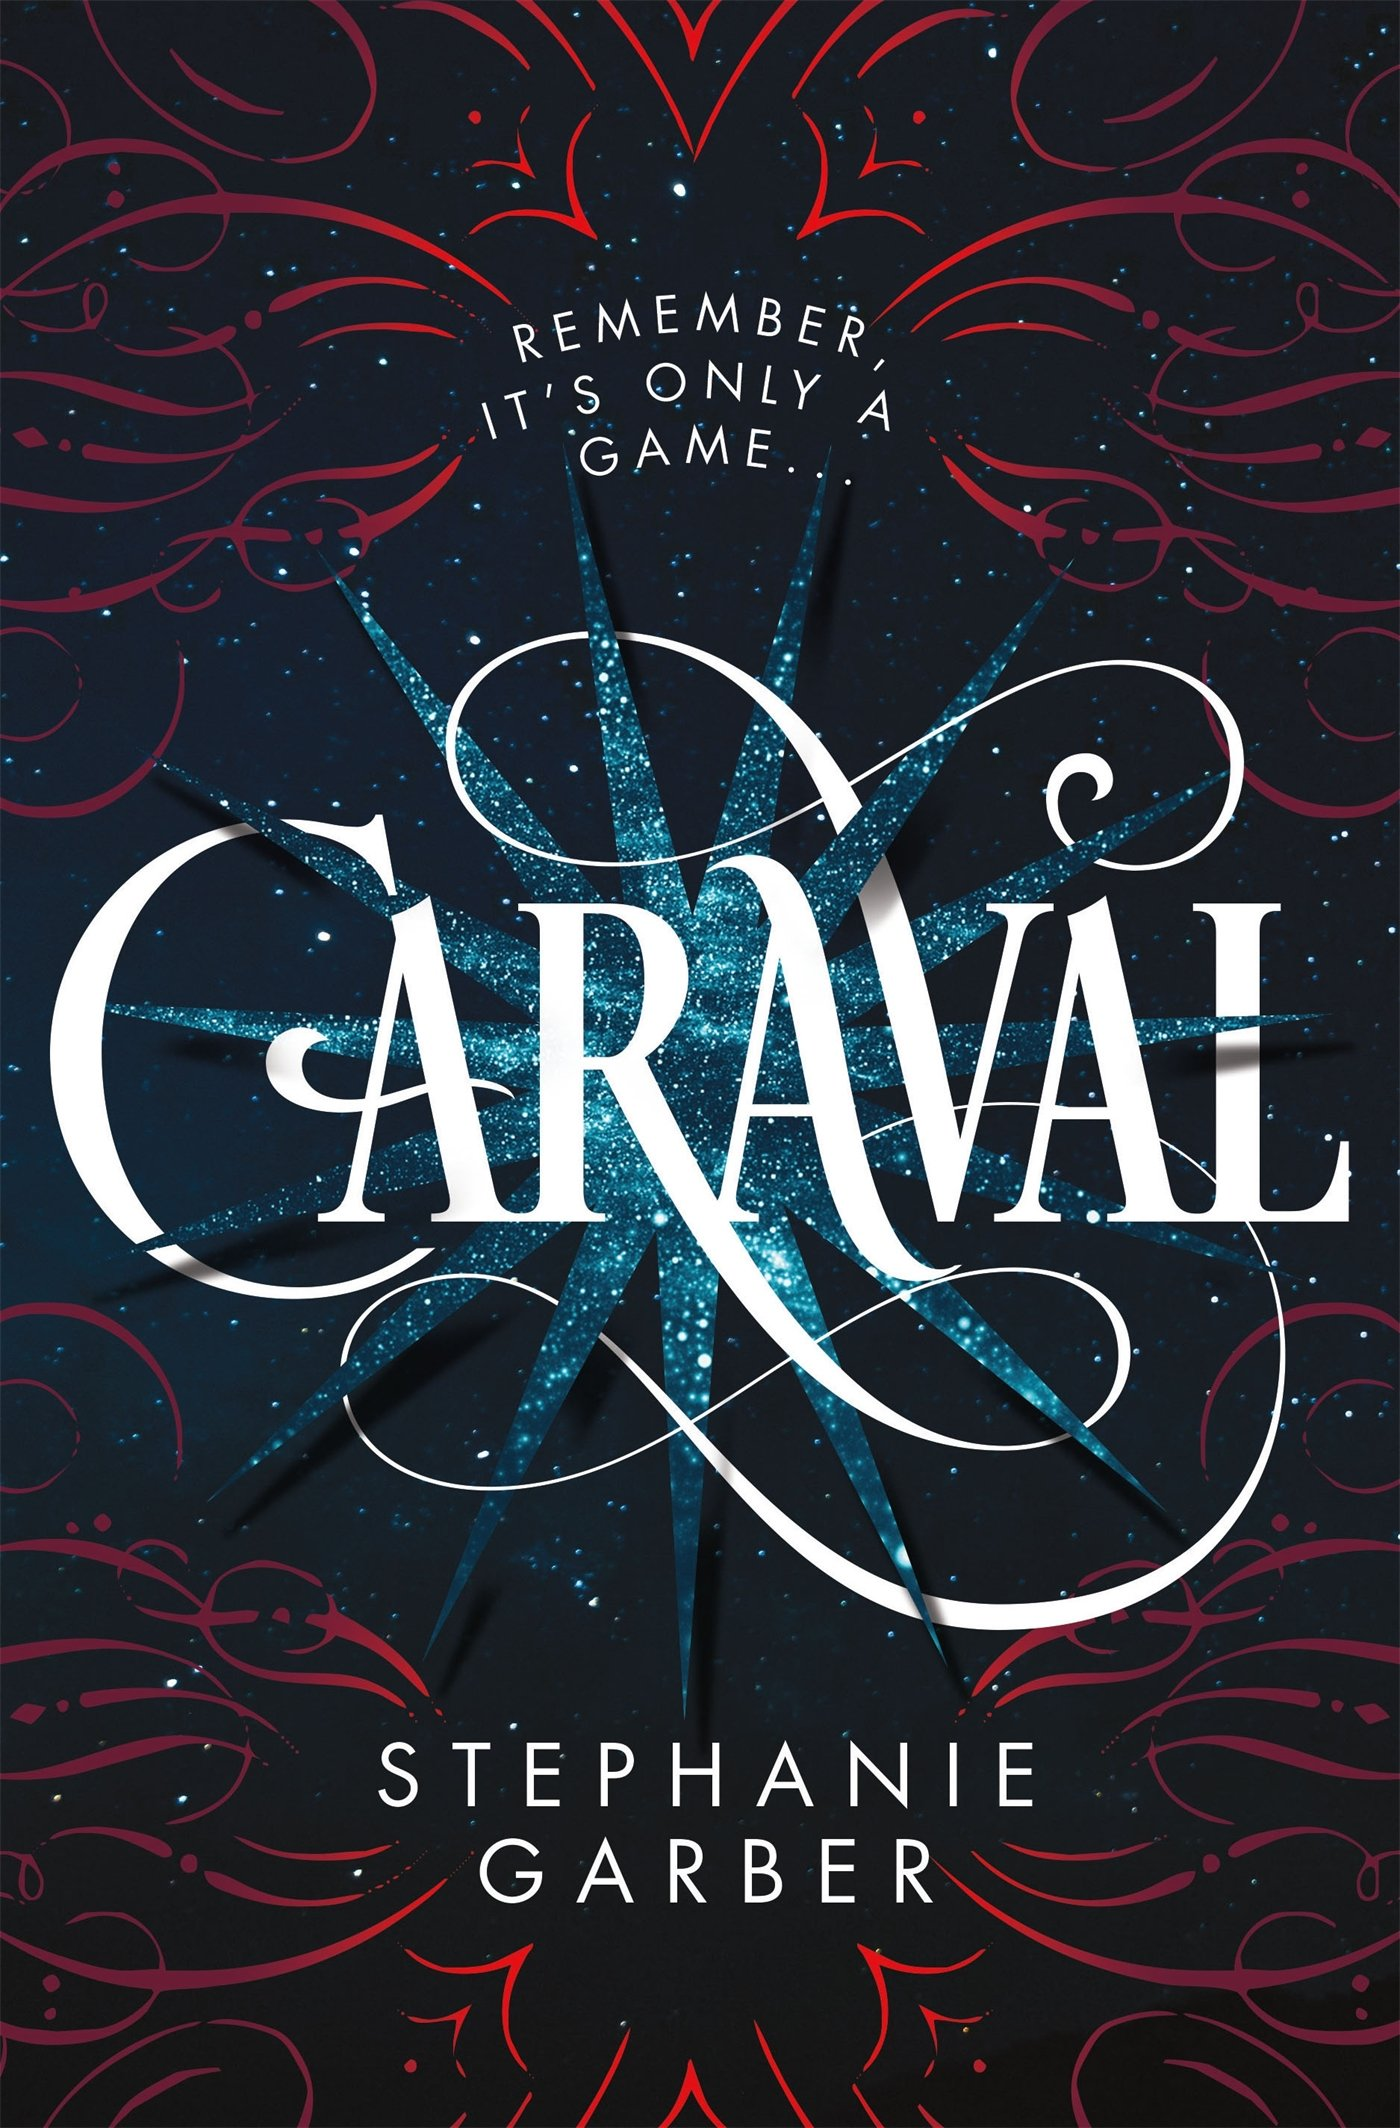 Buy Caraval (Caraval, 1) Book Online at Low Prices in India | Caraval ( Caraval, 1) Reviews & Ratings - Amazon.in